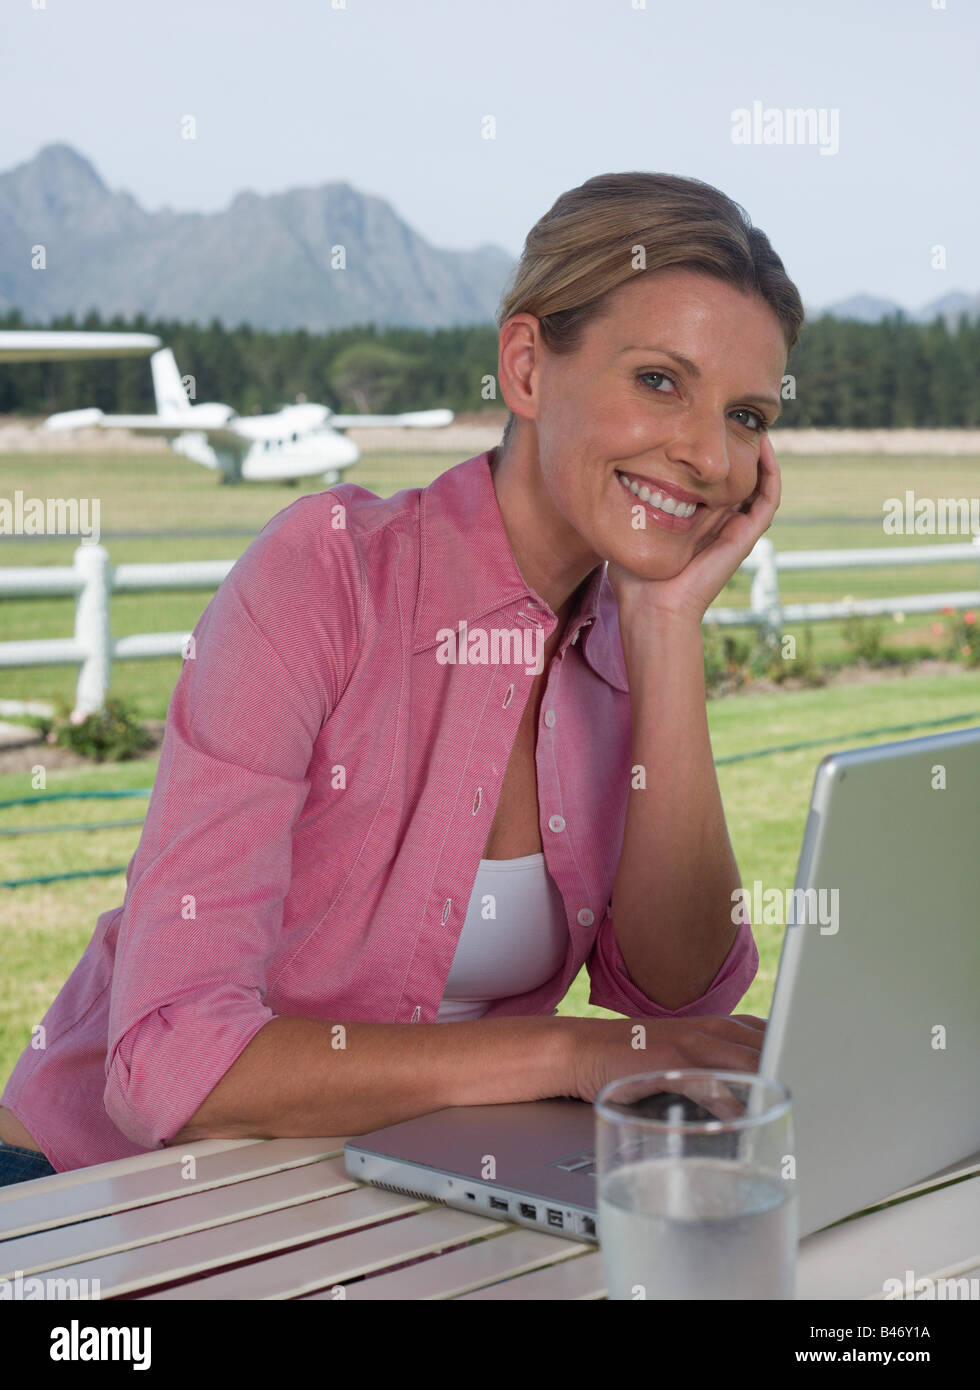 Woman on airfield with laptop - Stock Image